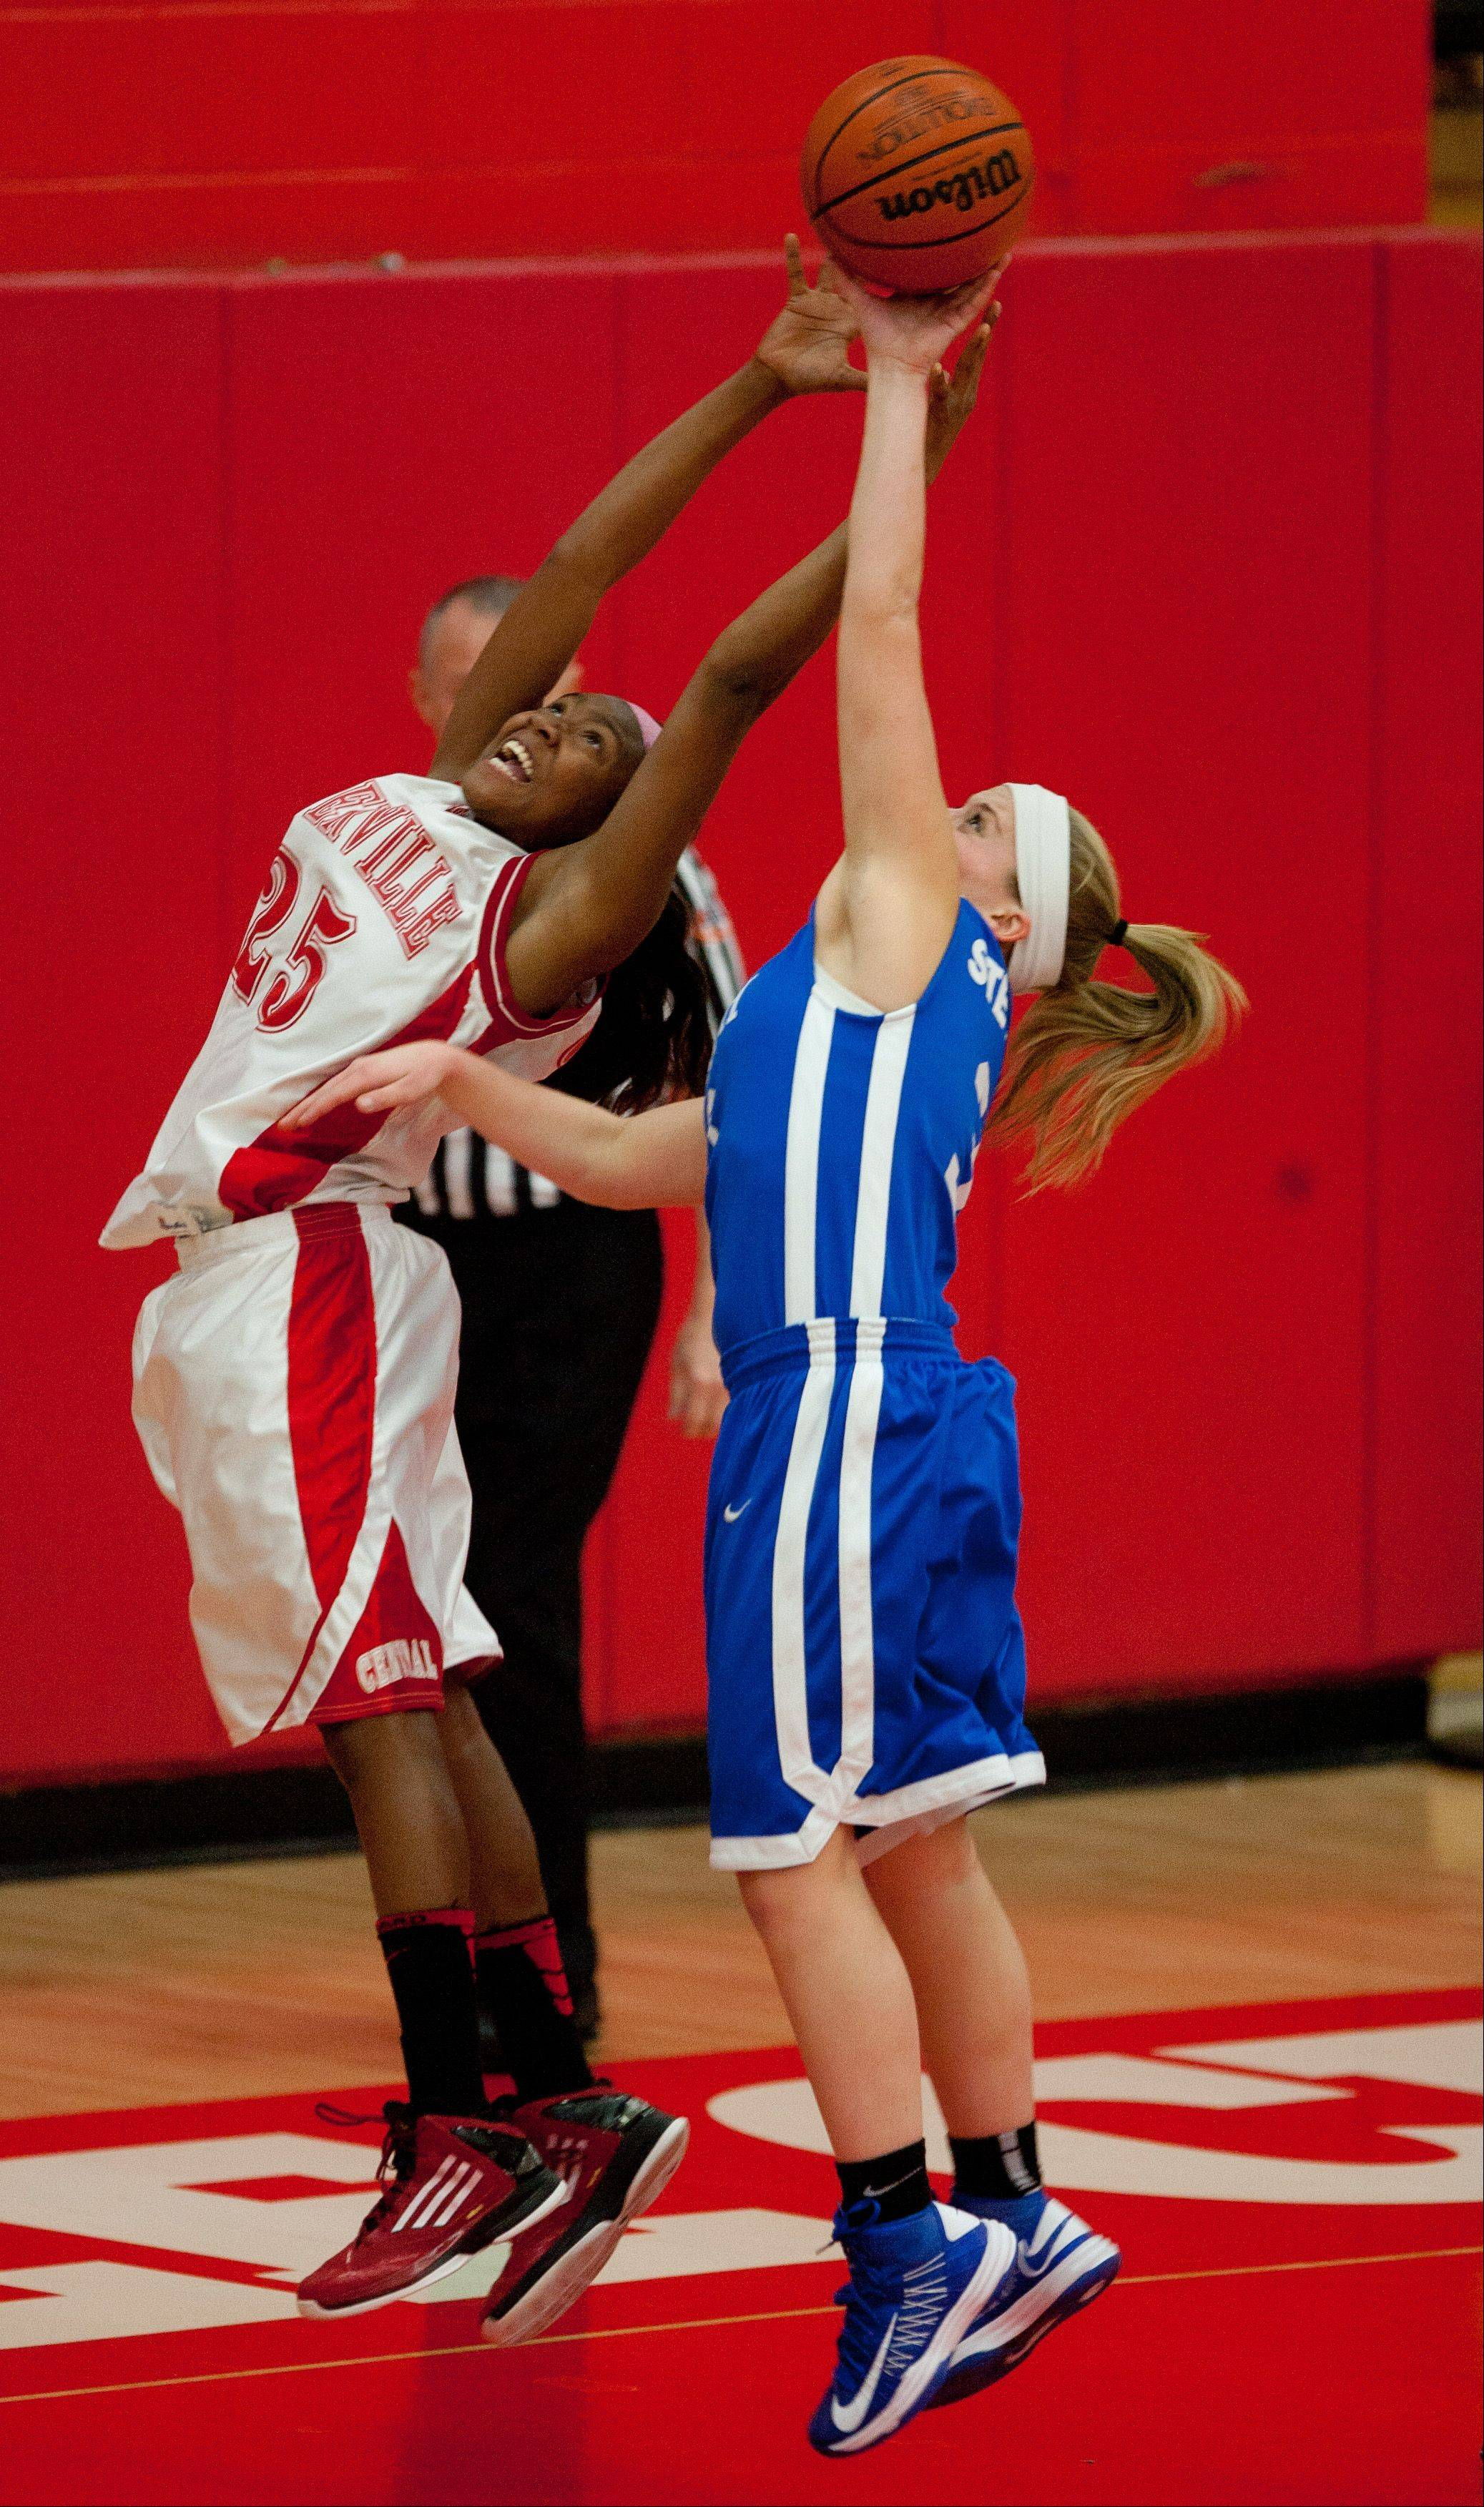 Naperville Central's Cierra Stanciel, left, looks to rebound over Wheaton North during Saturday's game in Naperville.